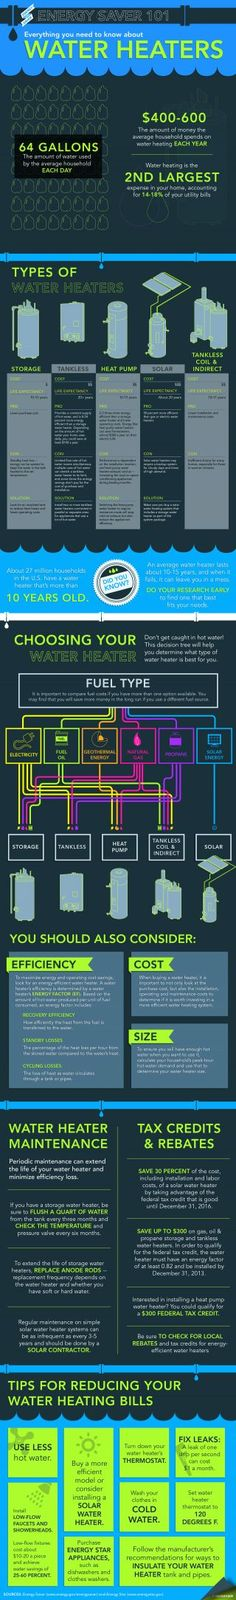 New Infographic and Projects to Keep Your #Energy #Bills Out of Hot Water - #HVAC tips http://brewercommercialservices.com?utm_content=buffer96752&utm_medium=social&utm_source=pinterest.com&utm_campaign=buffer